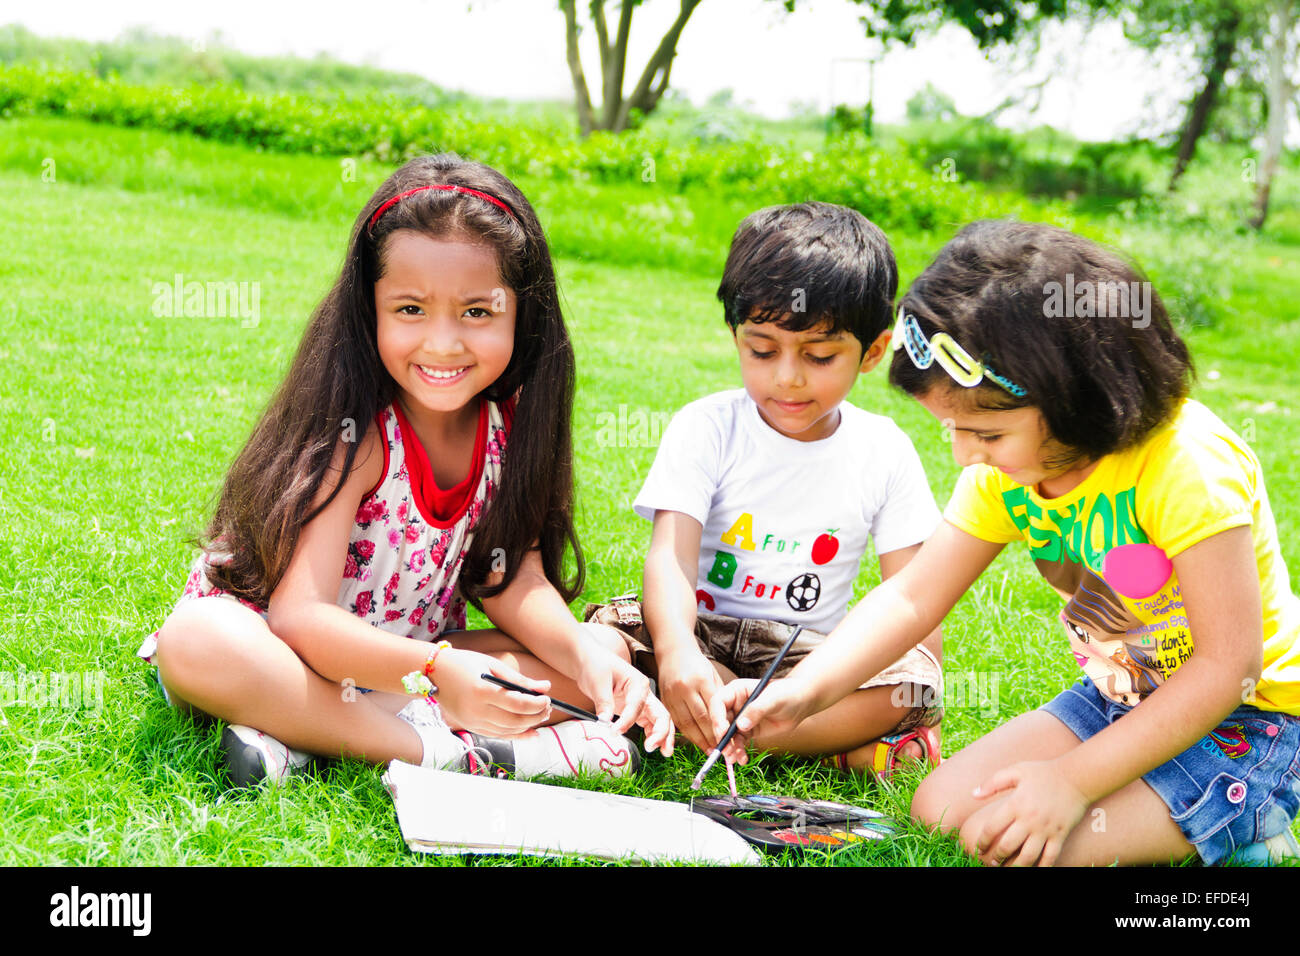 3 indian children Students park Drawing Stock Photo ...